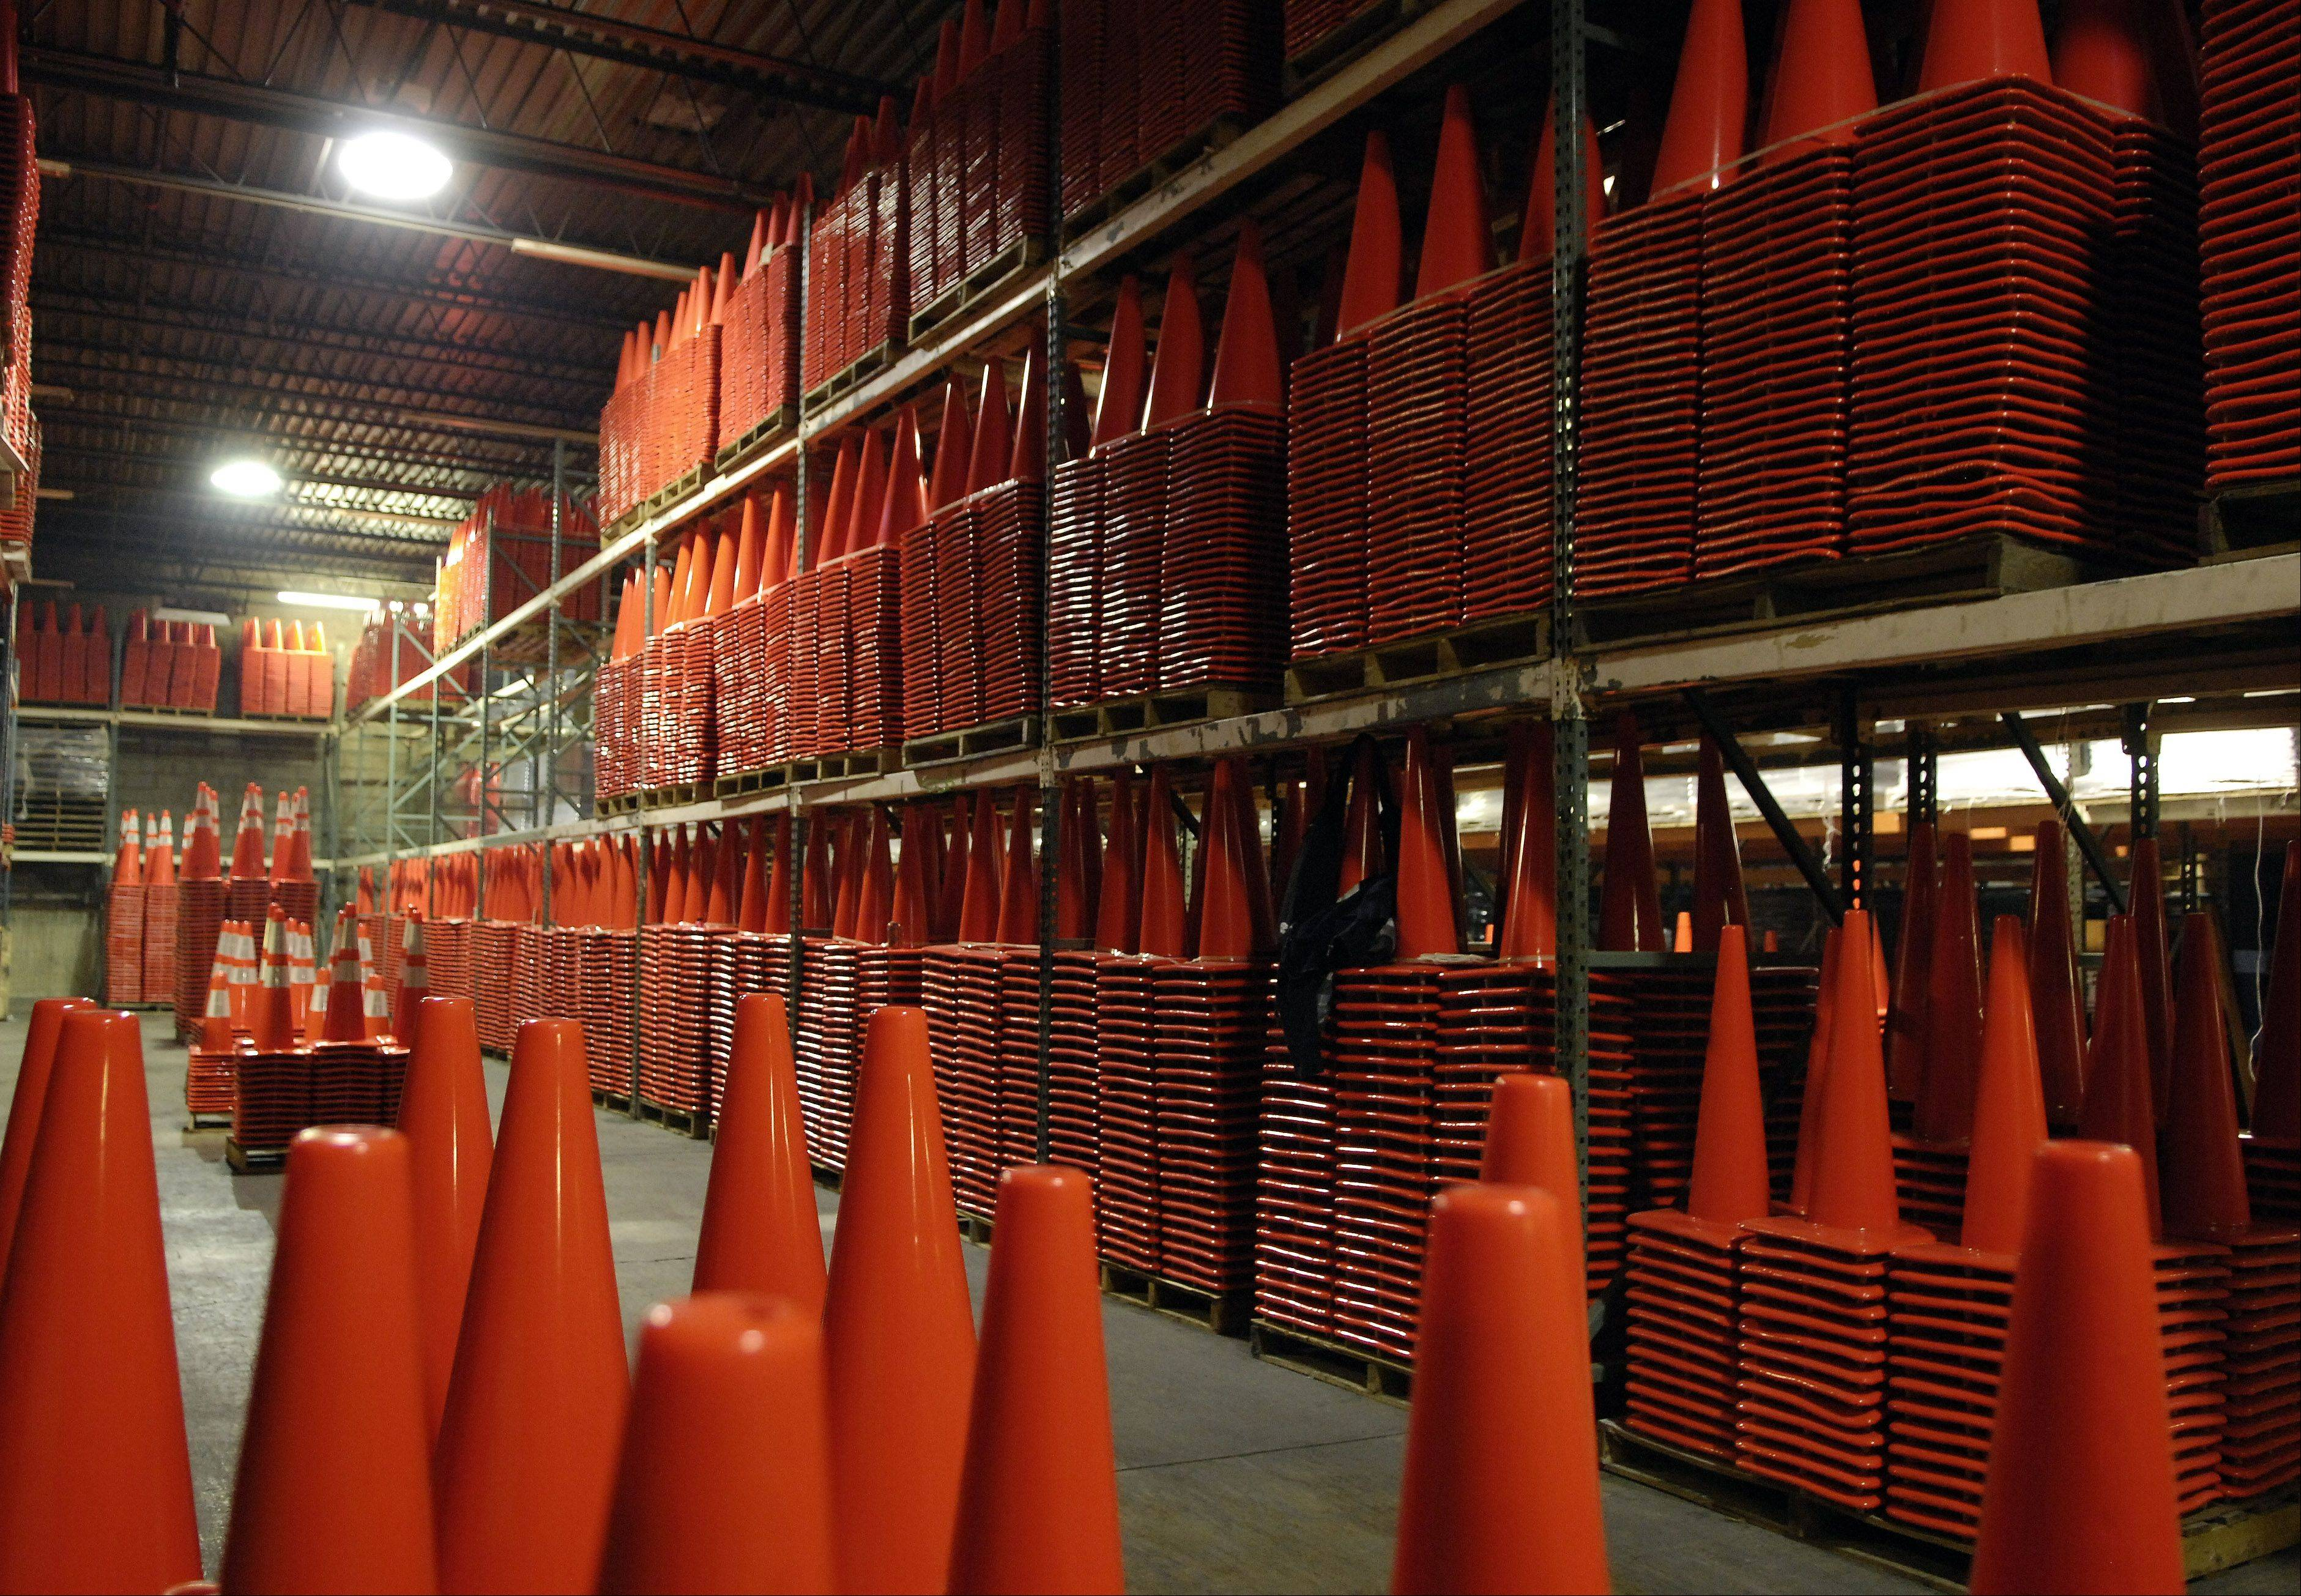 Work Area Protection Corp. in St. Charles sells over 1.6 million cones a year. Their warehouse holds about 60,000 at a time and that inventory turns over every couple of weeks.